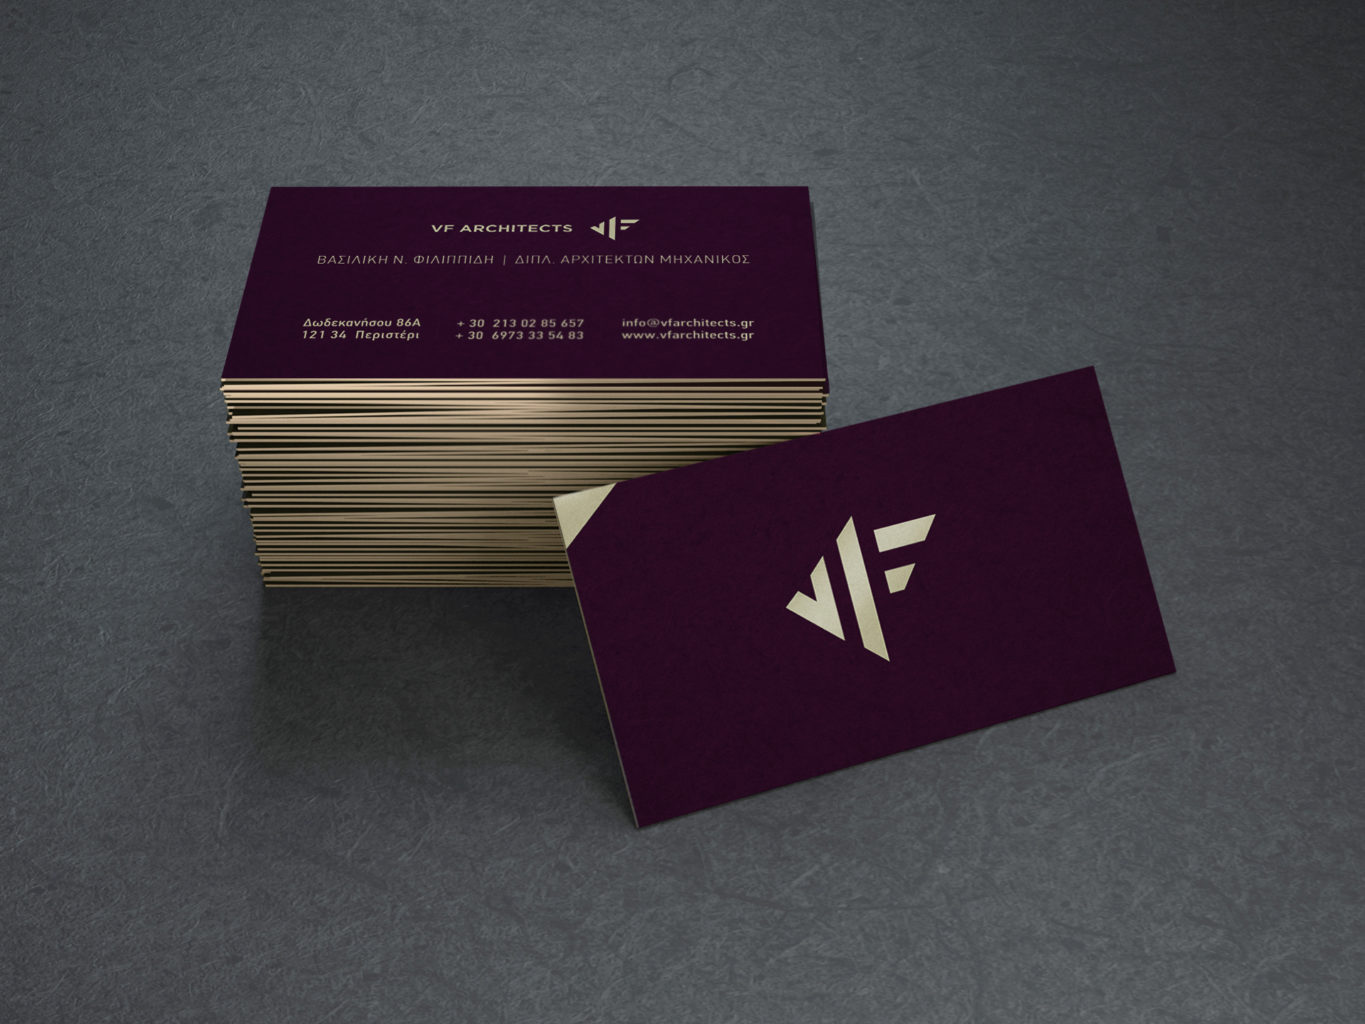 VF Architects business cards